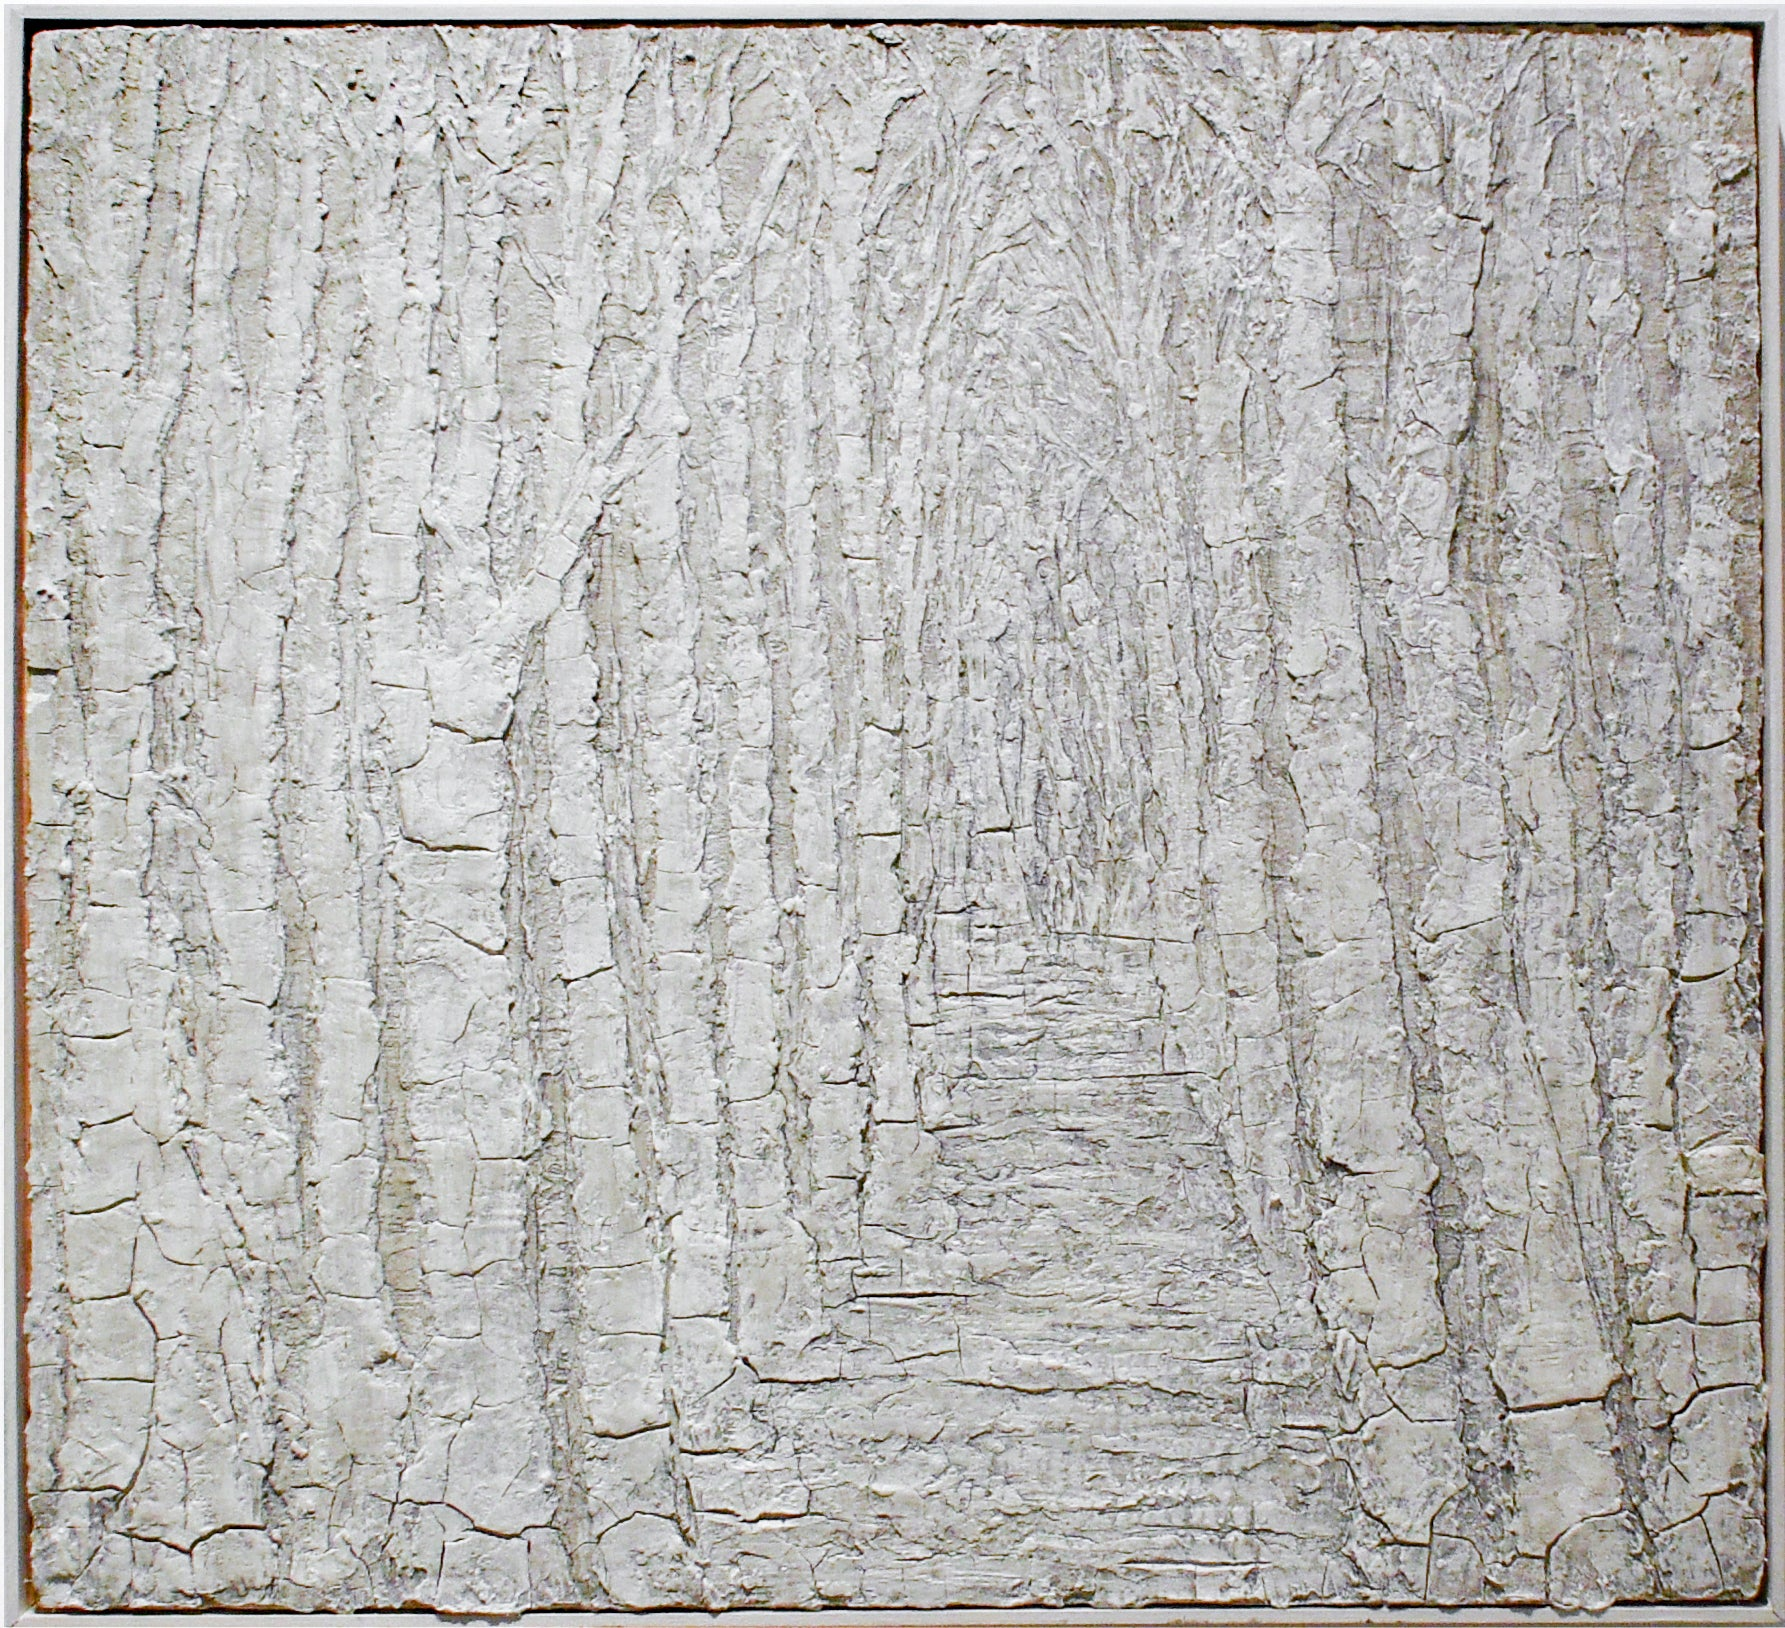 White Trees: Monochromatic Abstracted Landscape Painting of White Forest